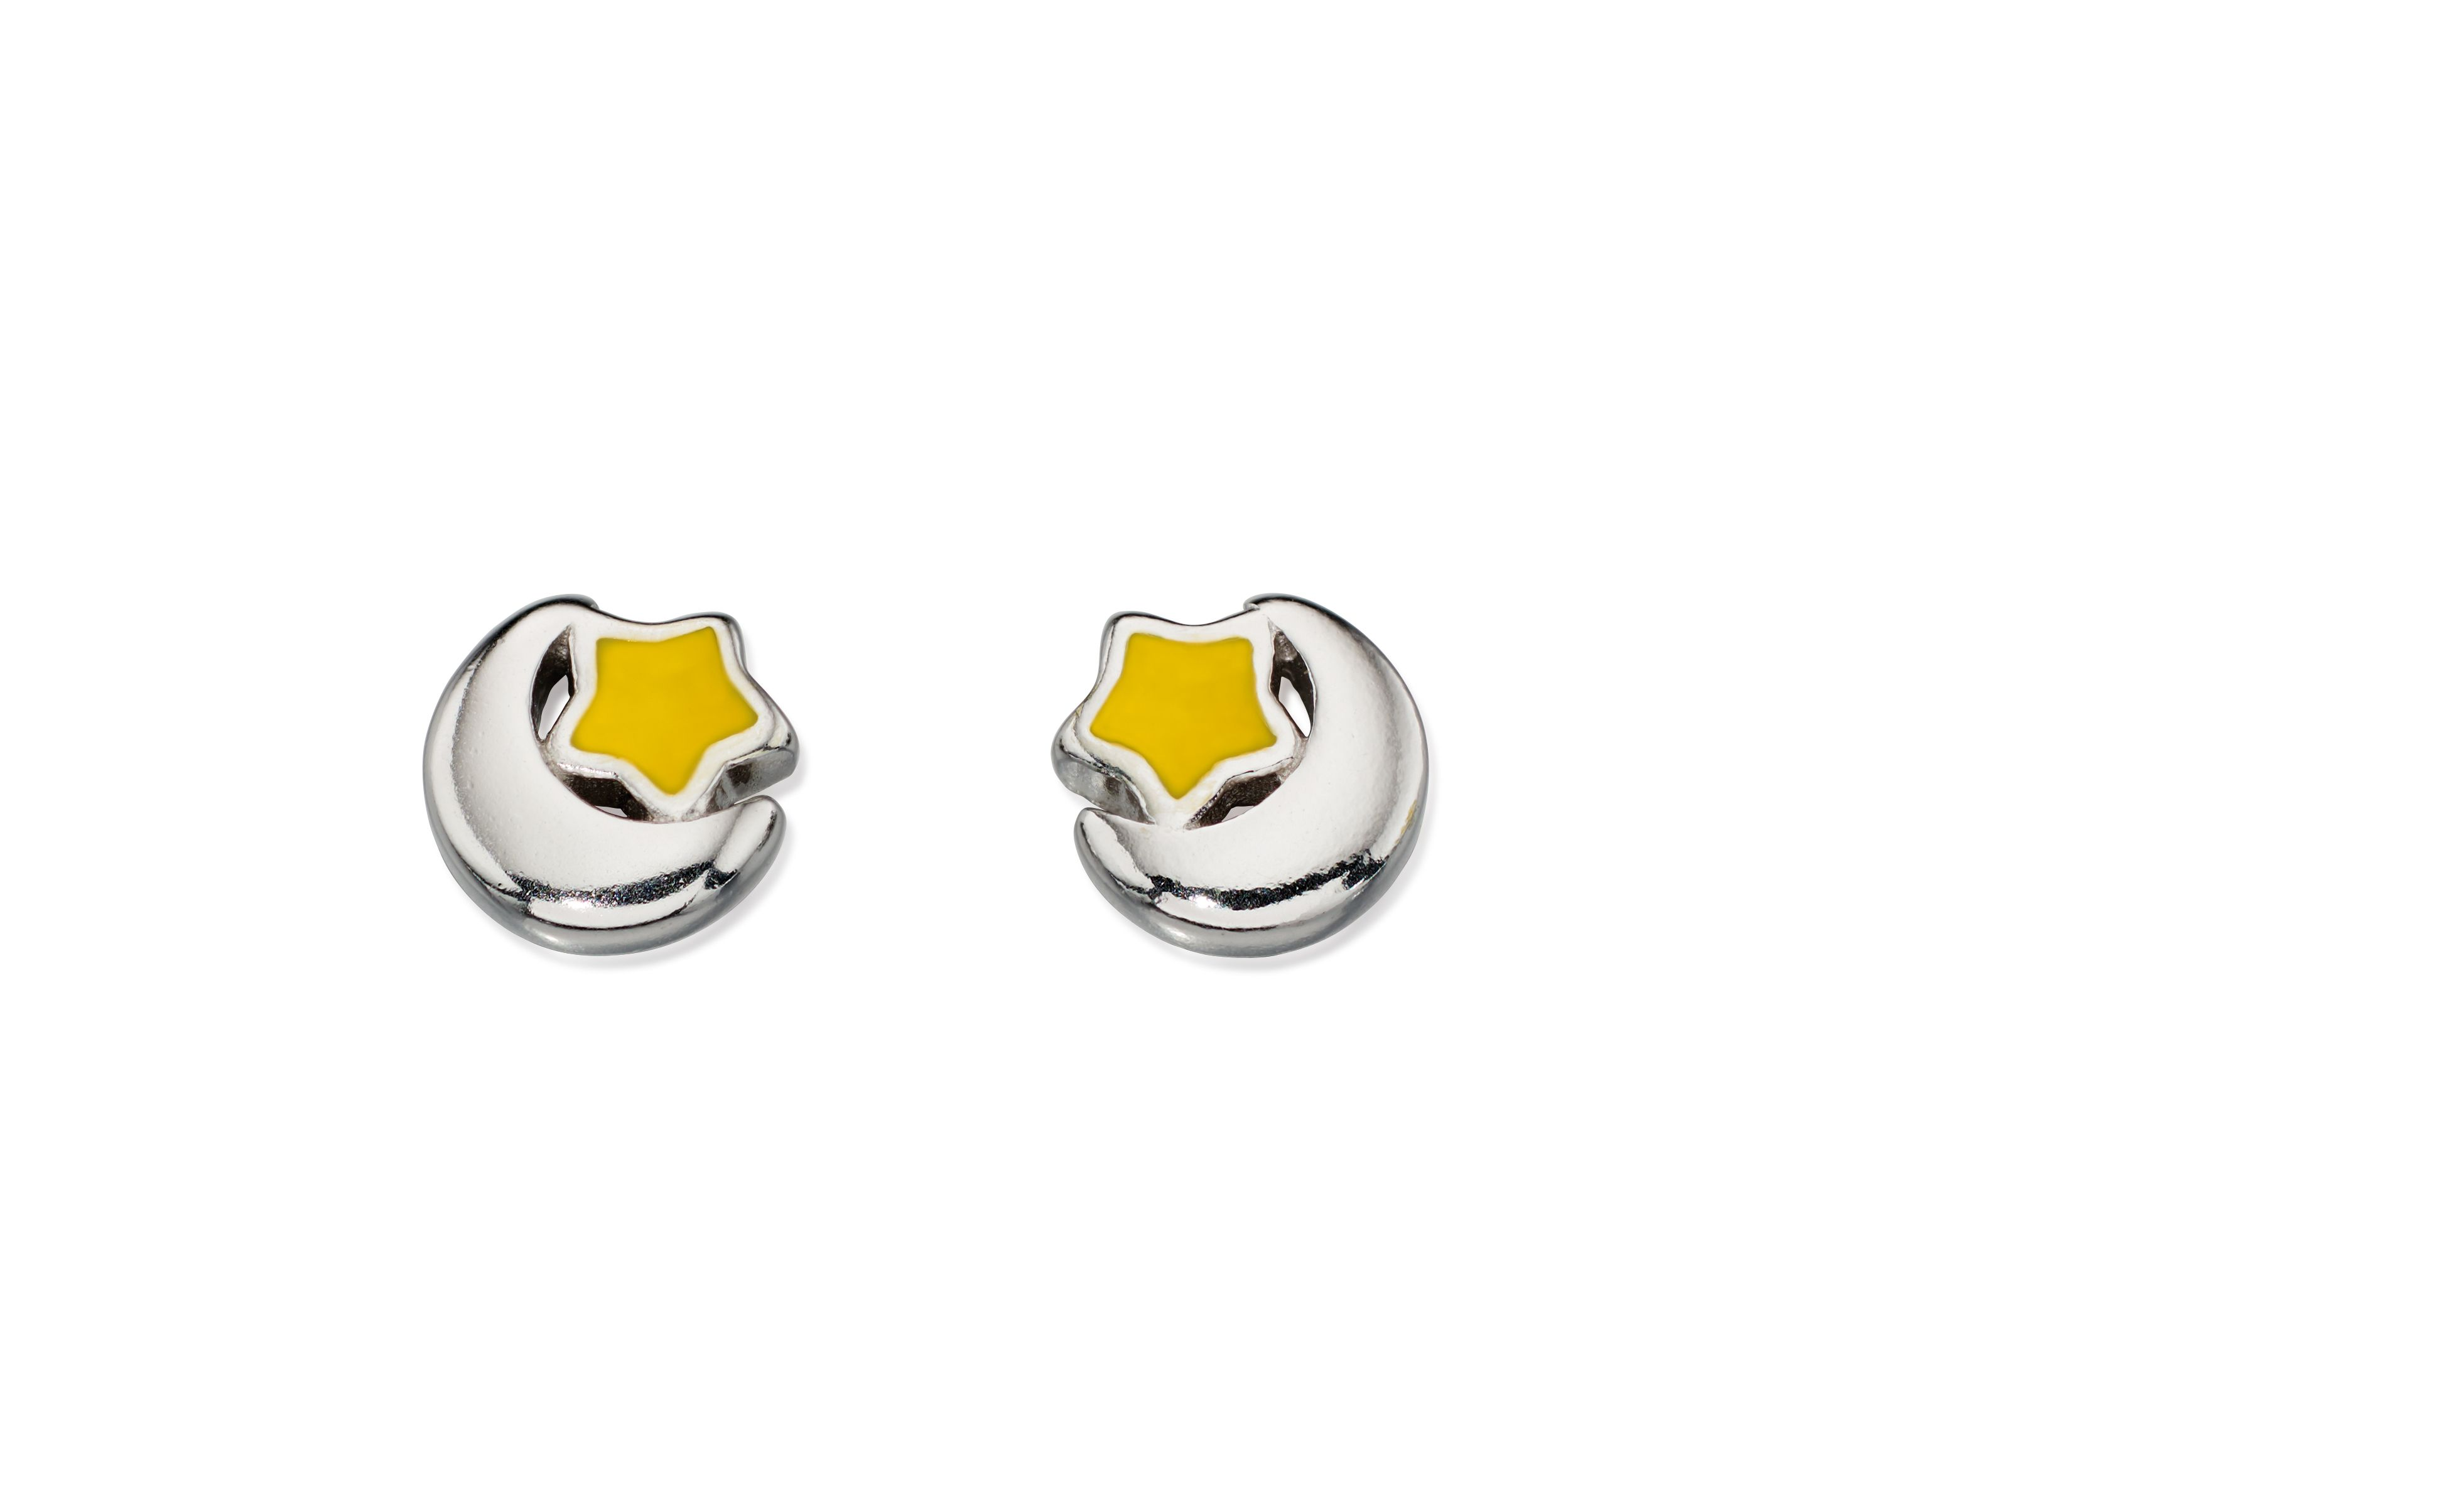 D for Diamond Childrens 925 Sterling Silver & Enamel Starry Night Moon & Star Stud Earrings